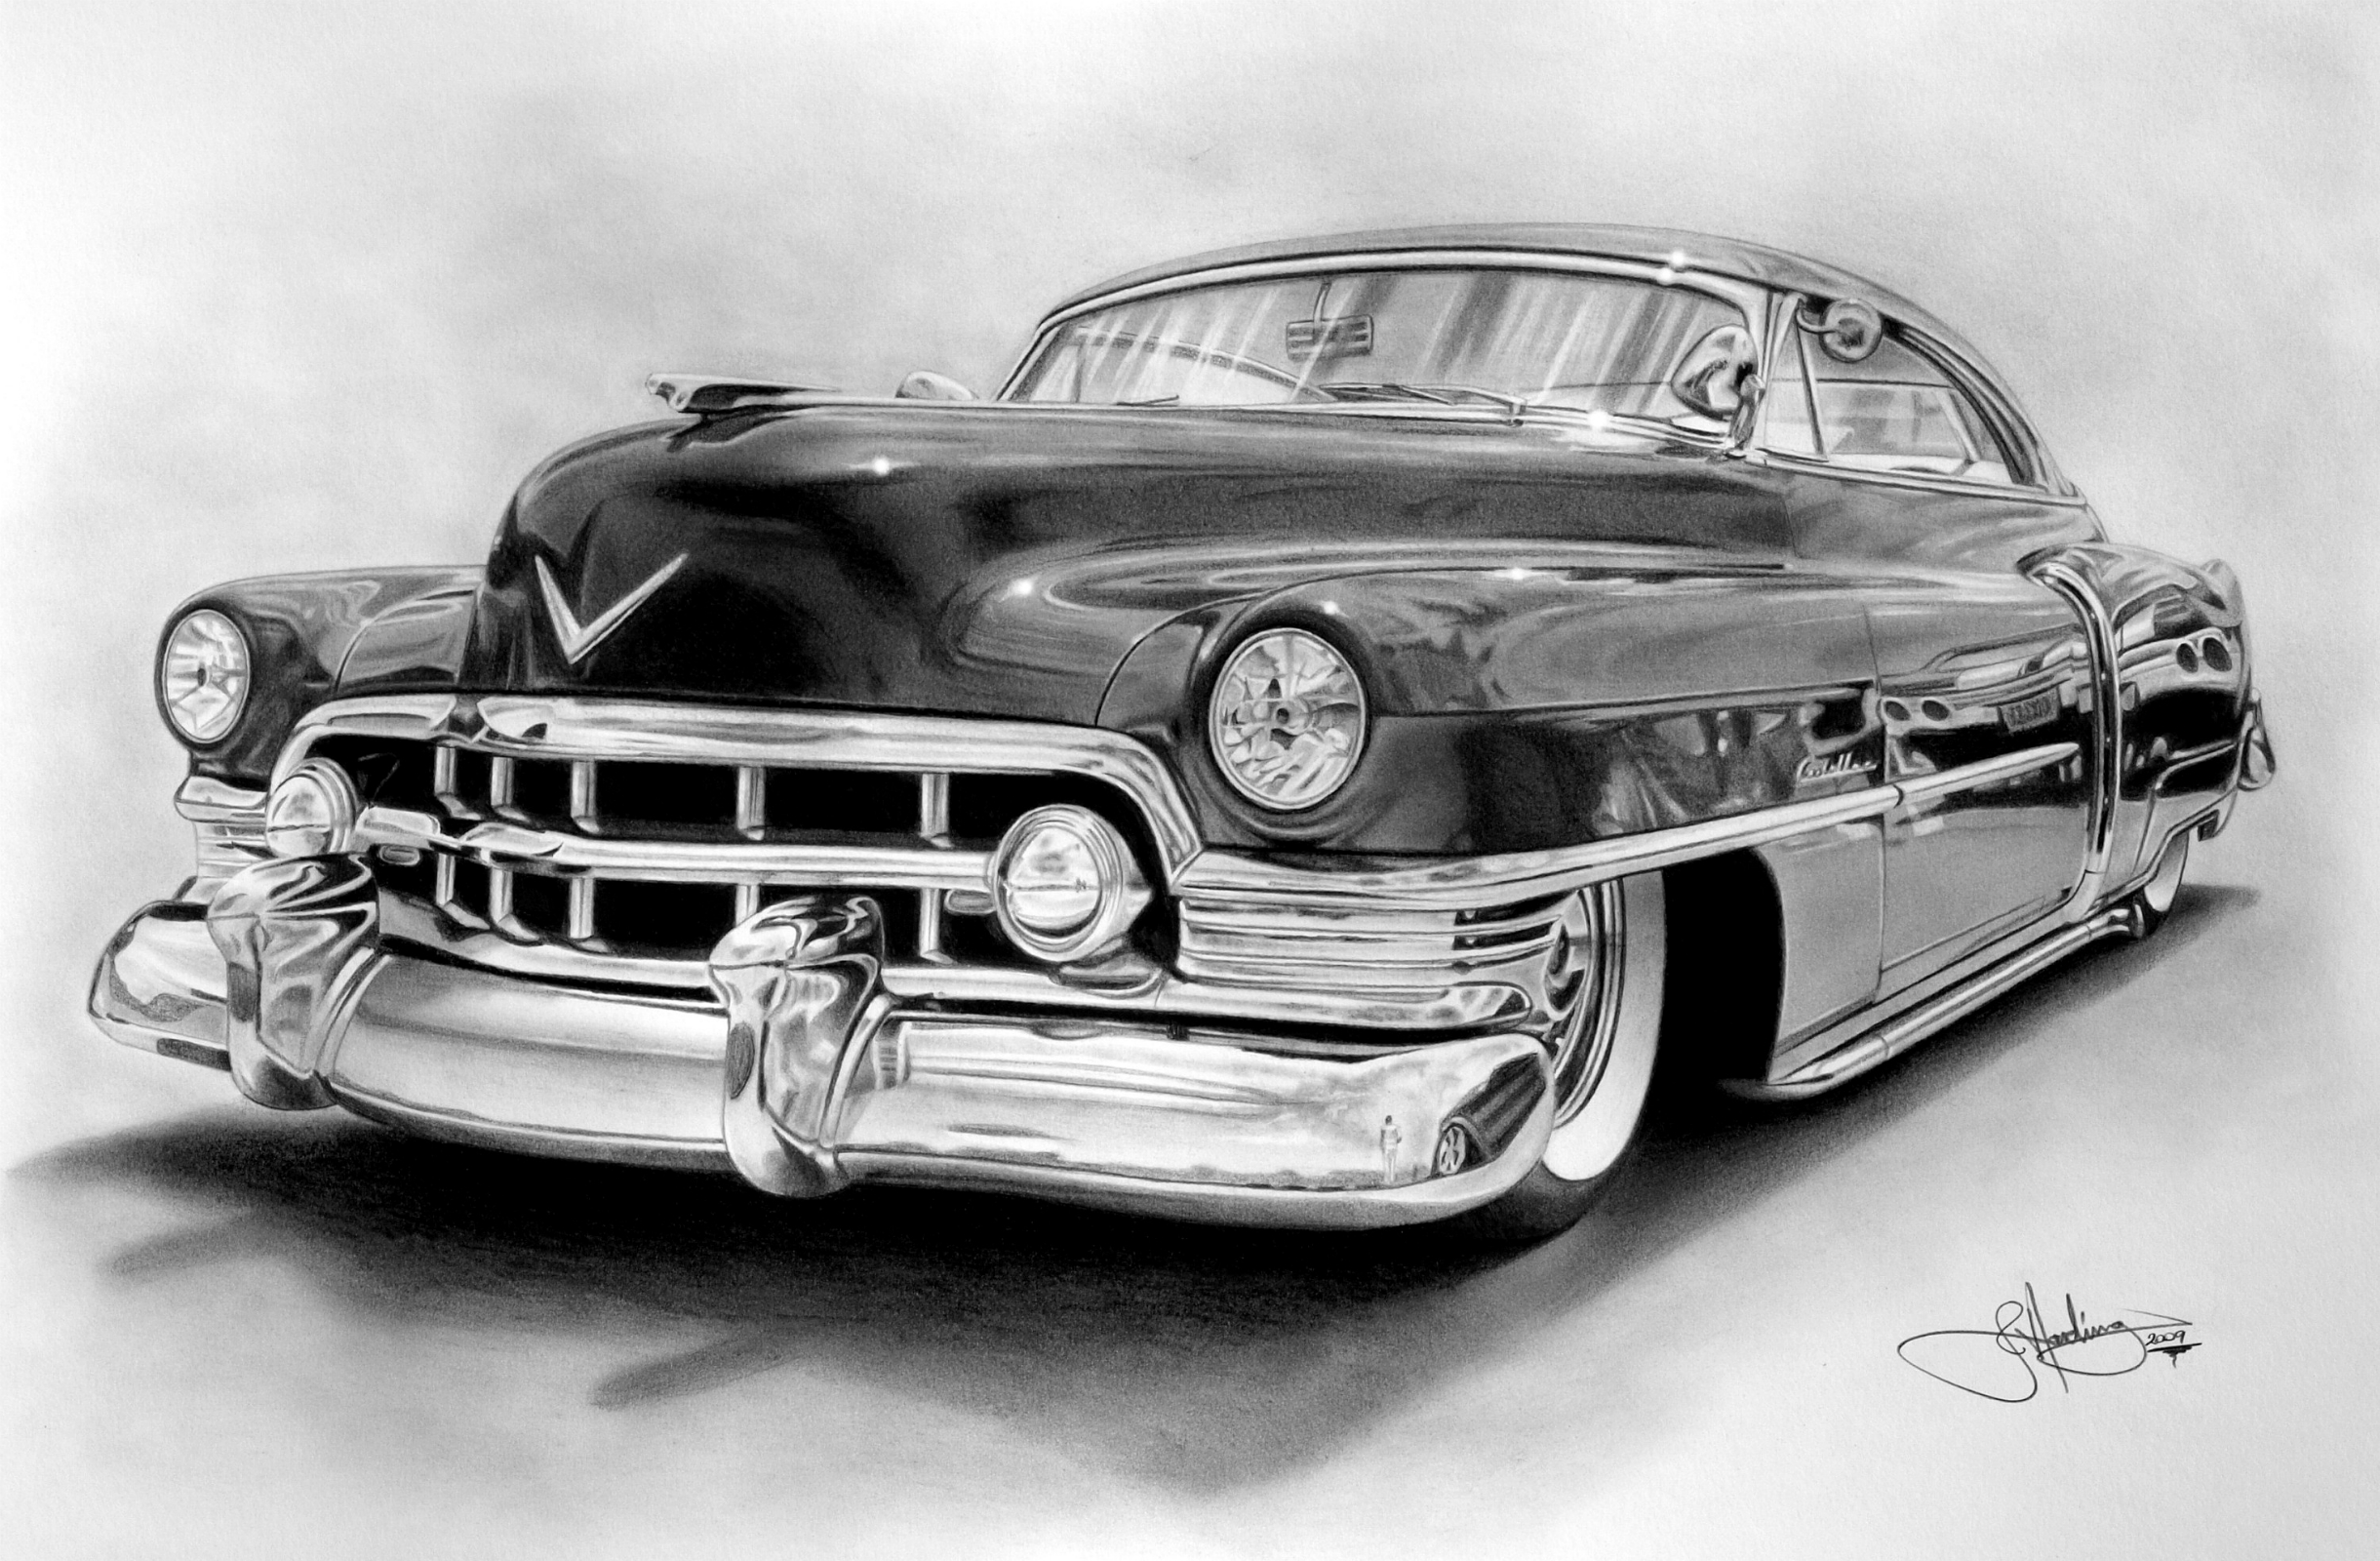 1949 Cadillac Fleetwood Coupe Deville Full HD Wallpaper And